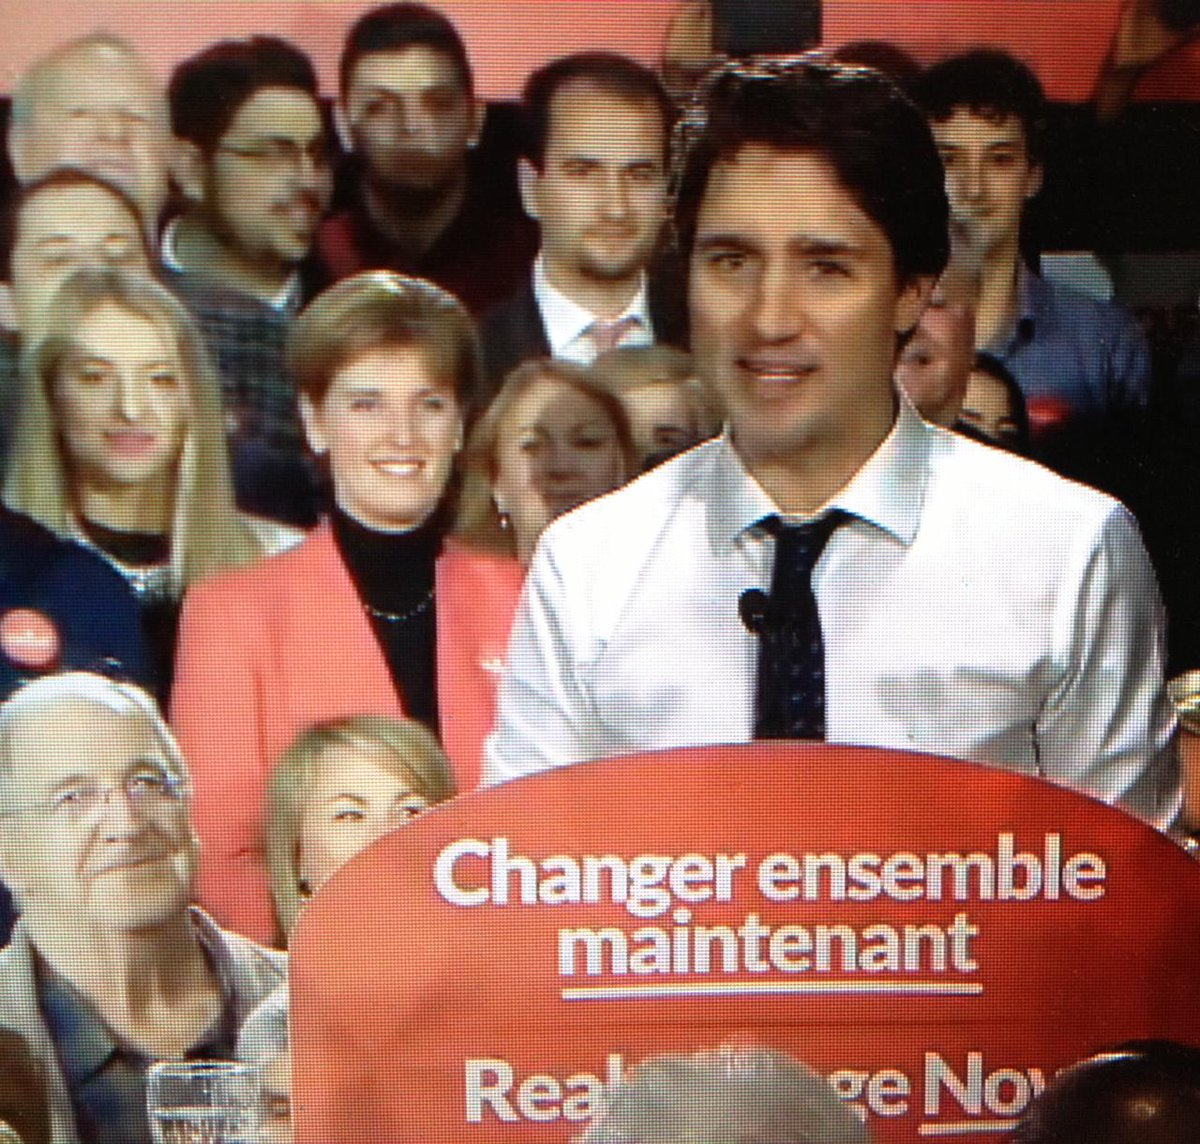 #Trudeau in Sherbrooke, Que. says #Harper appeals to 'our worst instincts.' Calls Harper's politics 'mean, negative.'